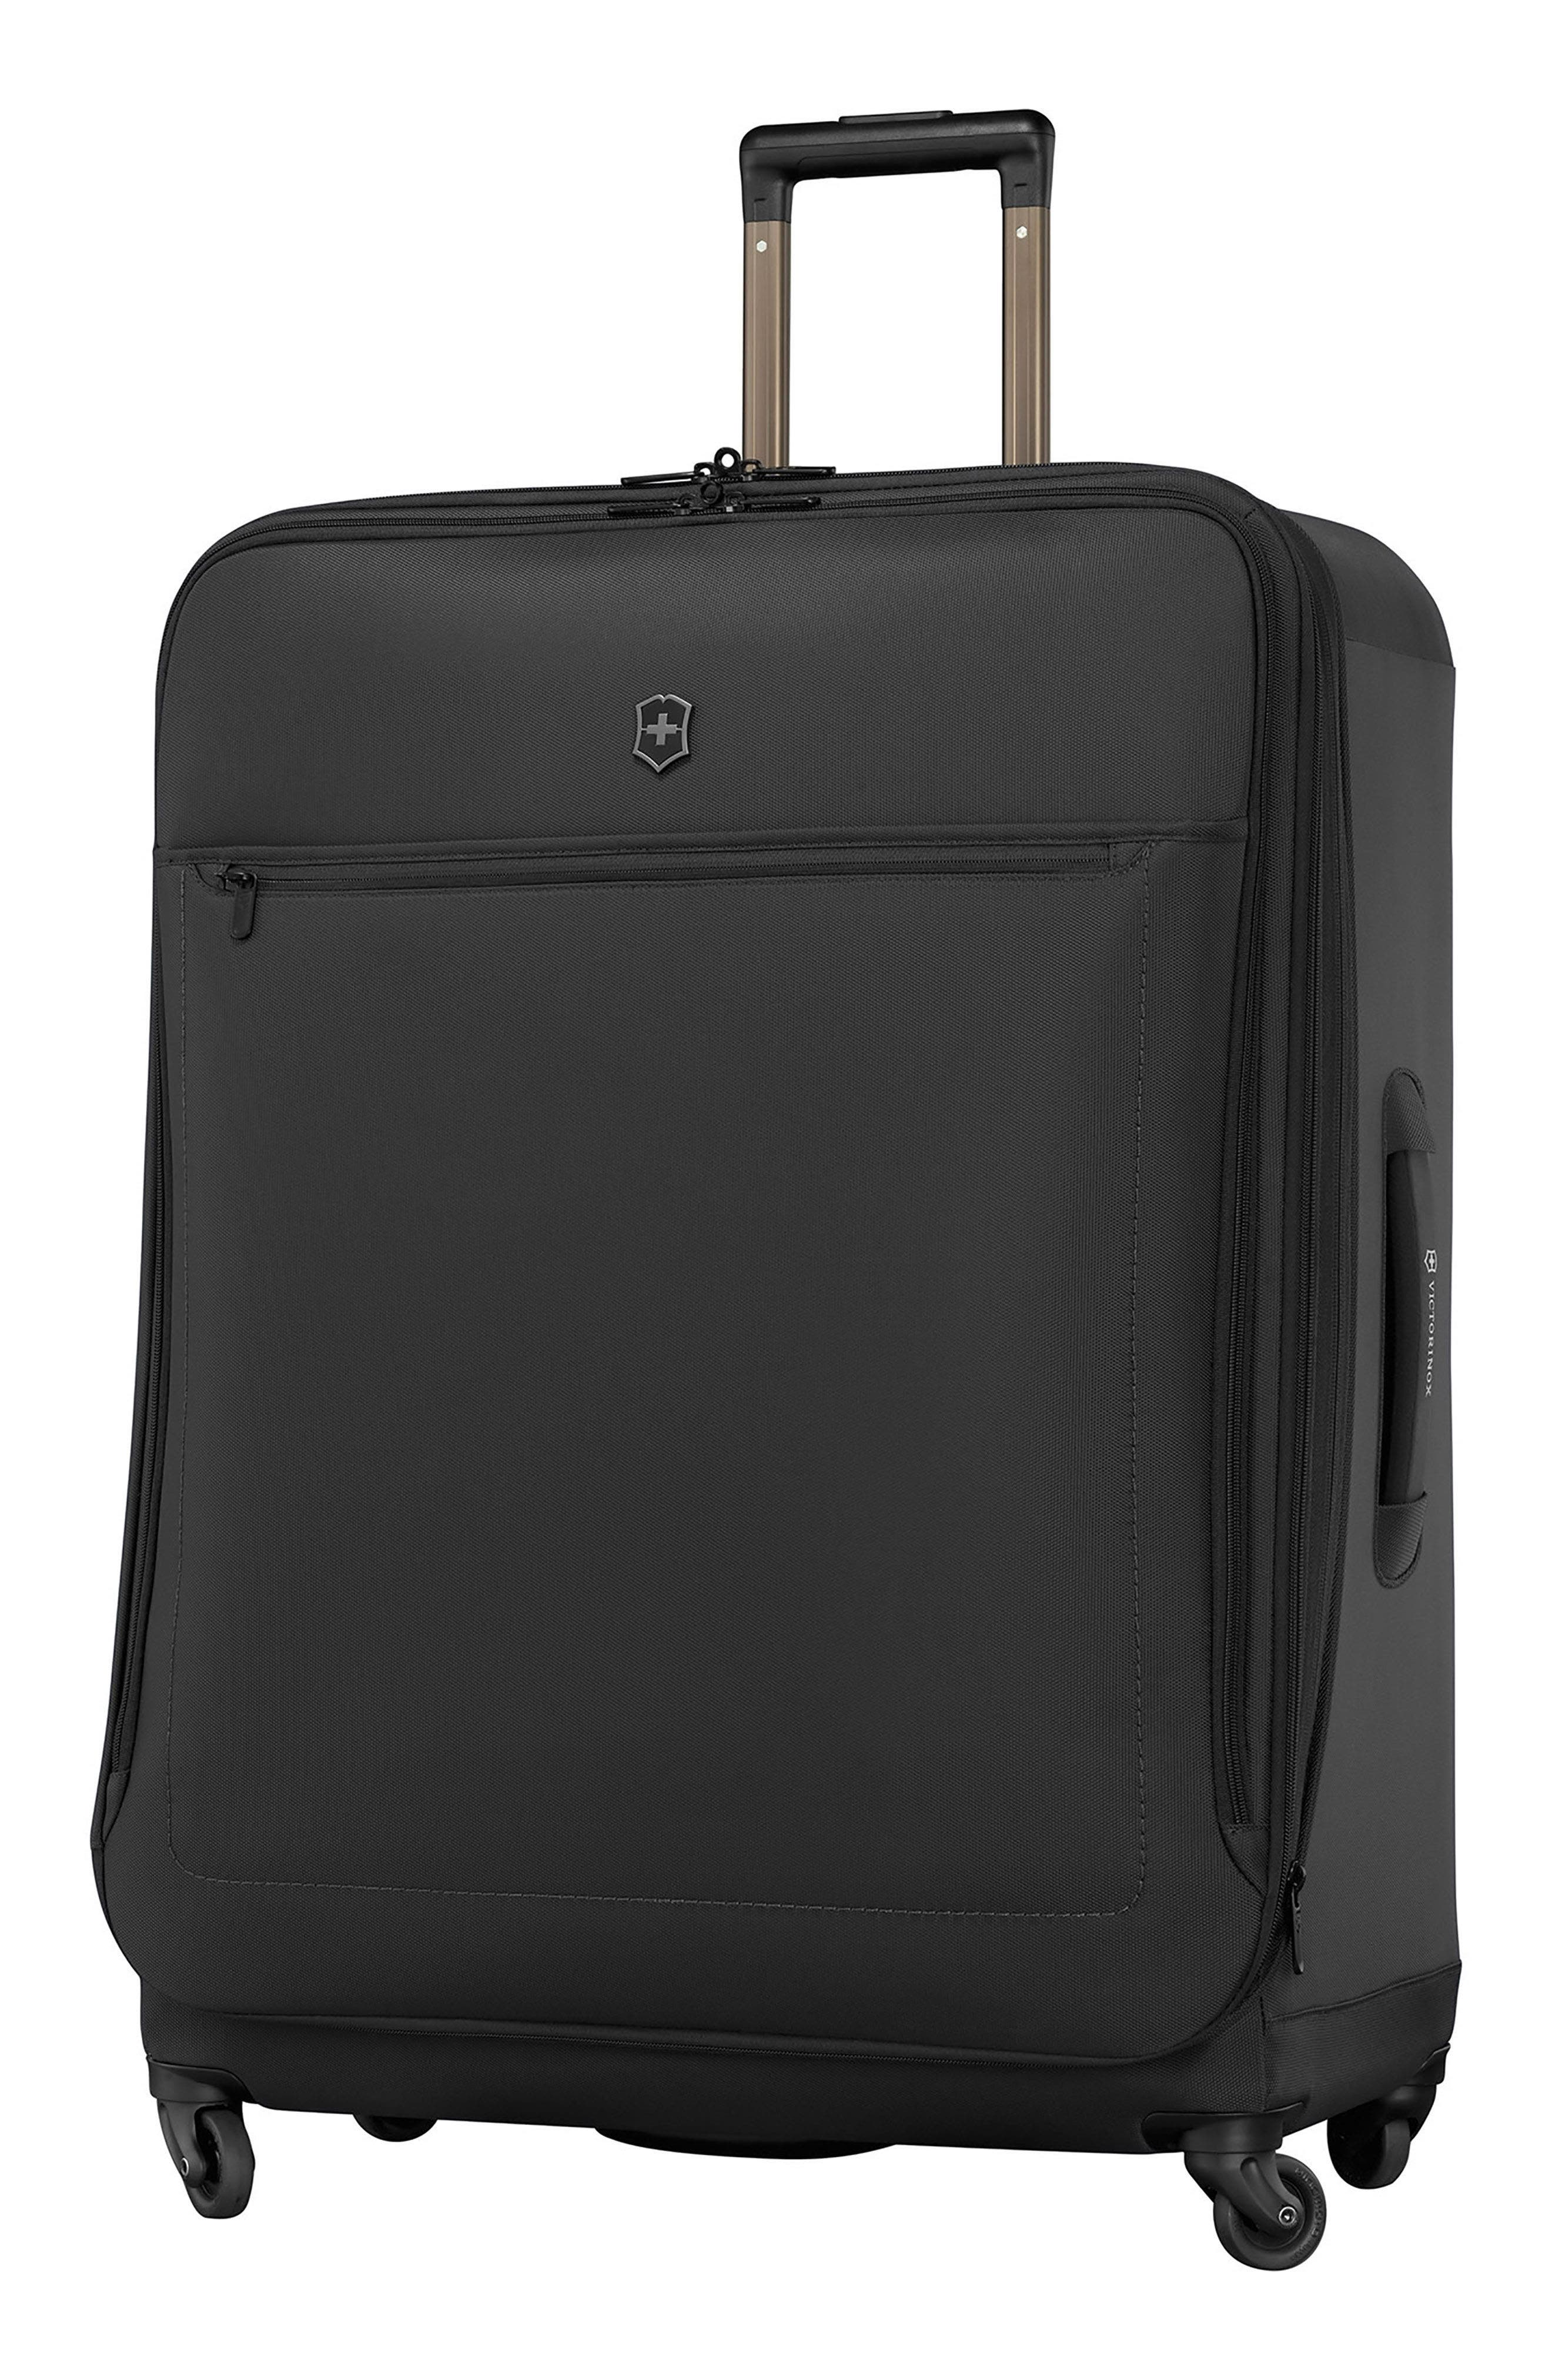 Main Image - Victorinox Swiss Army® Avolve 3.0 XL 32-Inch Wheeled Packing Case